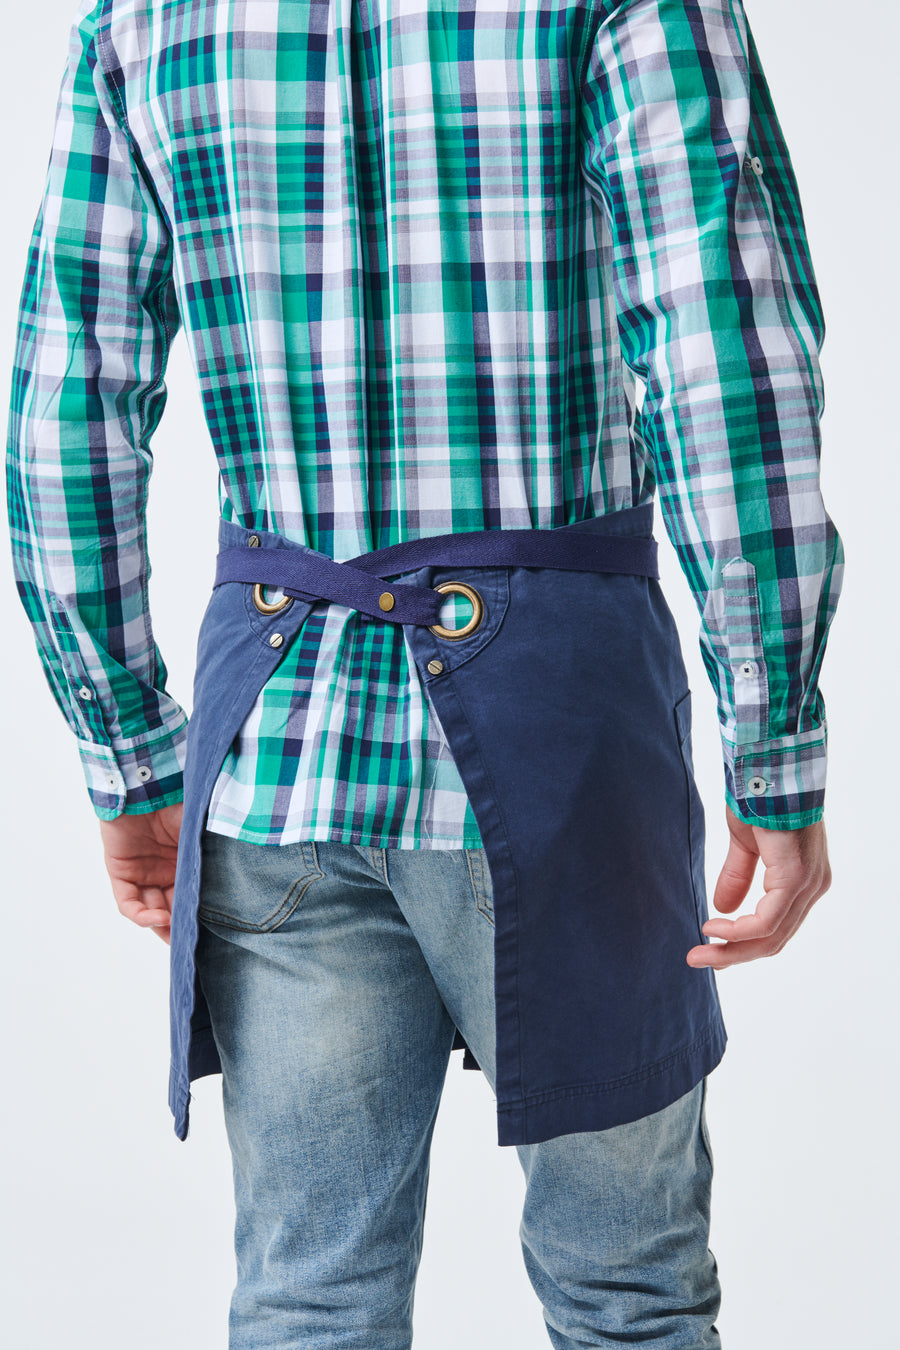 ARCHIE Waist Apron with textured tape straps - Navy Canvas